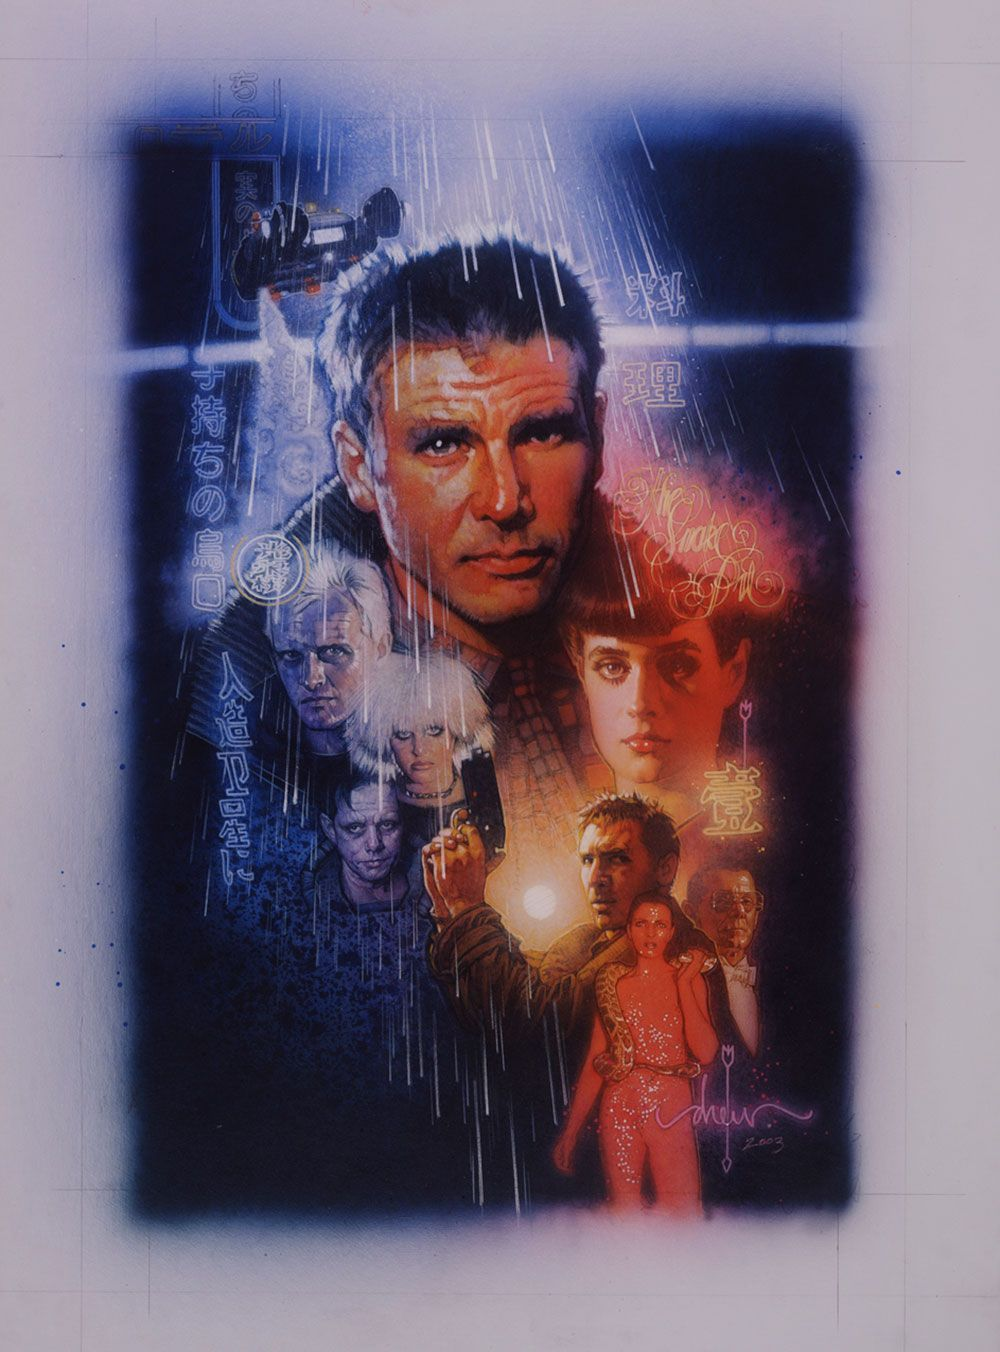 "Blade Runner  Medium: Acrylic paints and colored pencils on gessoed board Size: 30x40 inches Year 2003 I began working on this piece of art way back in 1982 when I was commissioned by the Studio to explore concepts for the poster. I did one color comprehensive originally and from that made a few alterations as requested by the Studio. In the end, they did not use my design so I never painted the finished illustration. In 2001, when Ridley Scott was thinking of releasing a new director's version of the film, I was asked if my original sketch from '82 could be used on the cover. It turned out that this was Ridley's favorite artwork for his film. I went through the usual artist angst, rather than use a comprehensive for the cover, better to use finished art and if I'm going to paint the finish should it be the 20-year-old design or should it be updated. I decided on the latter. The DVD was produced at long last and this is now the cover (2007). Signed and dated bottom right corner ""drew 2003"" © Copyright drew Struzan 2003"